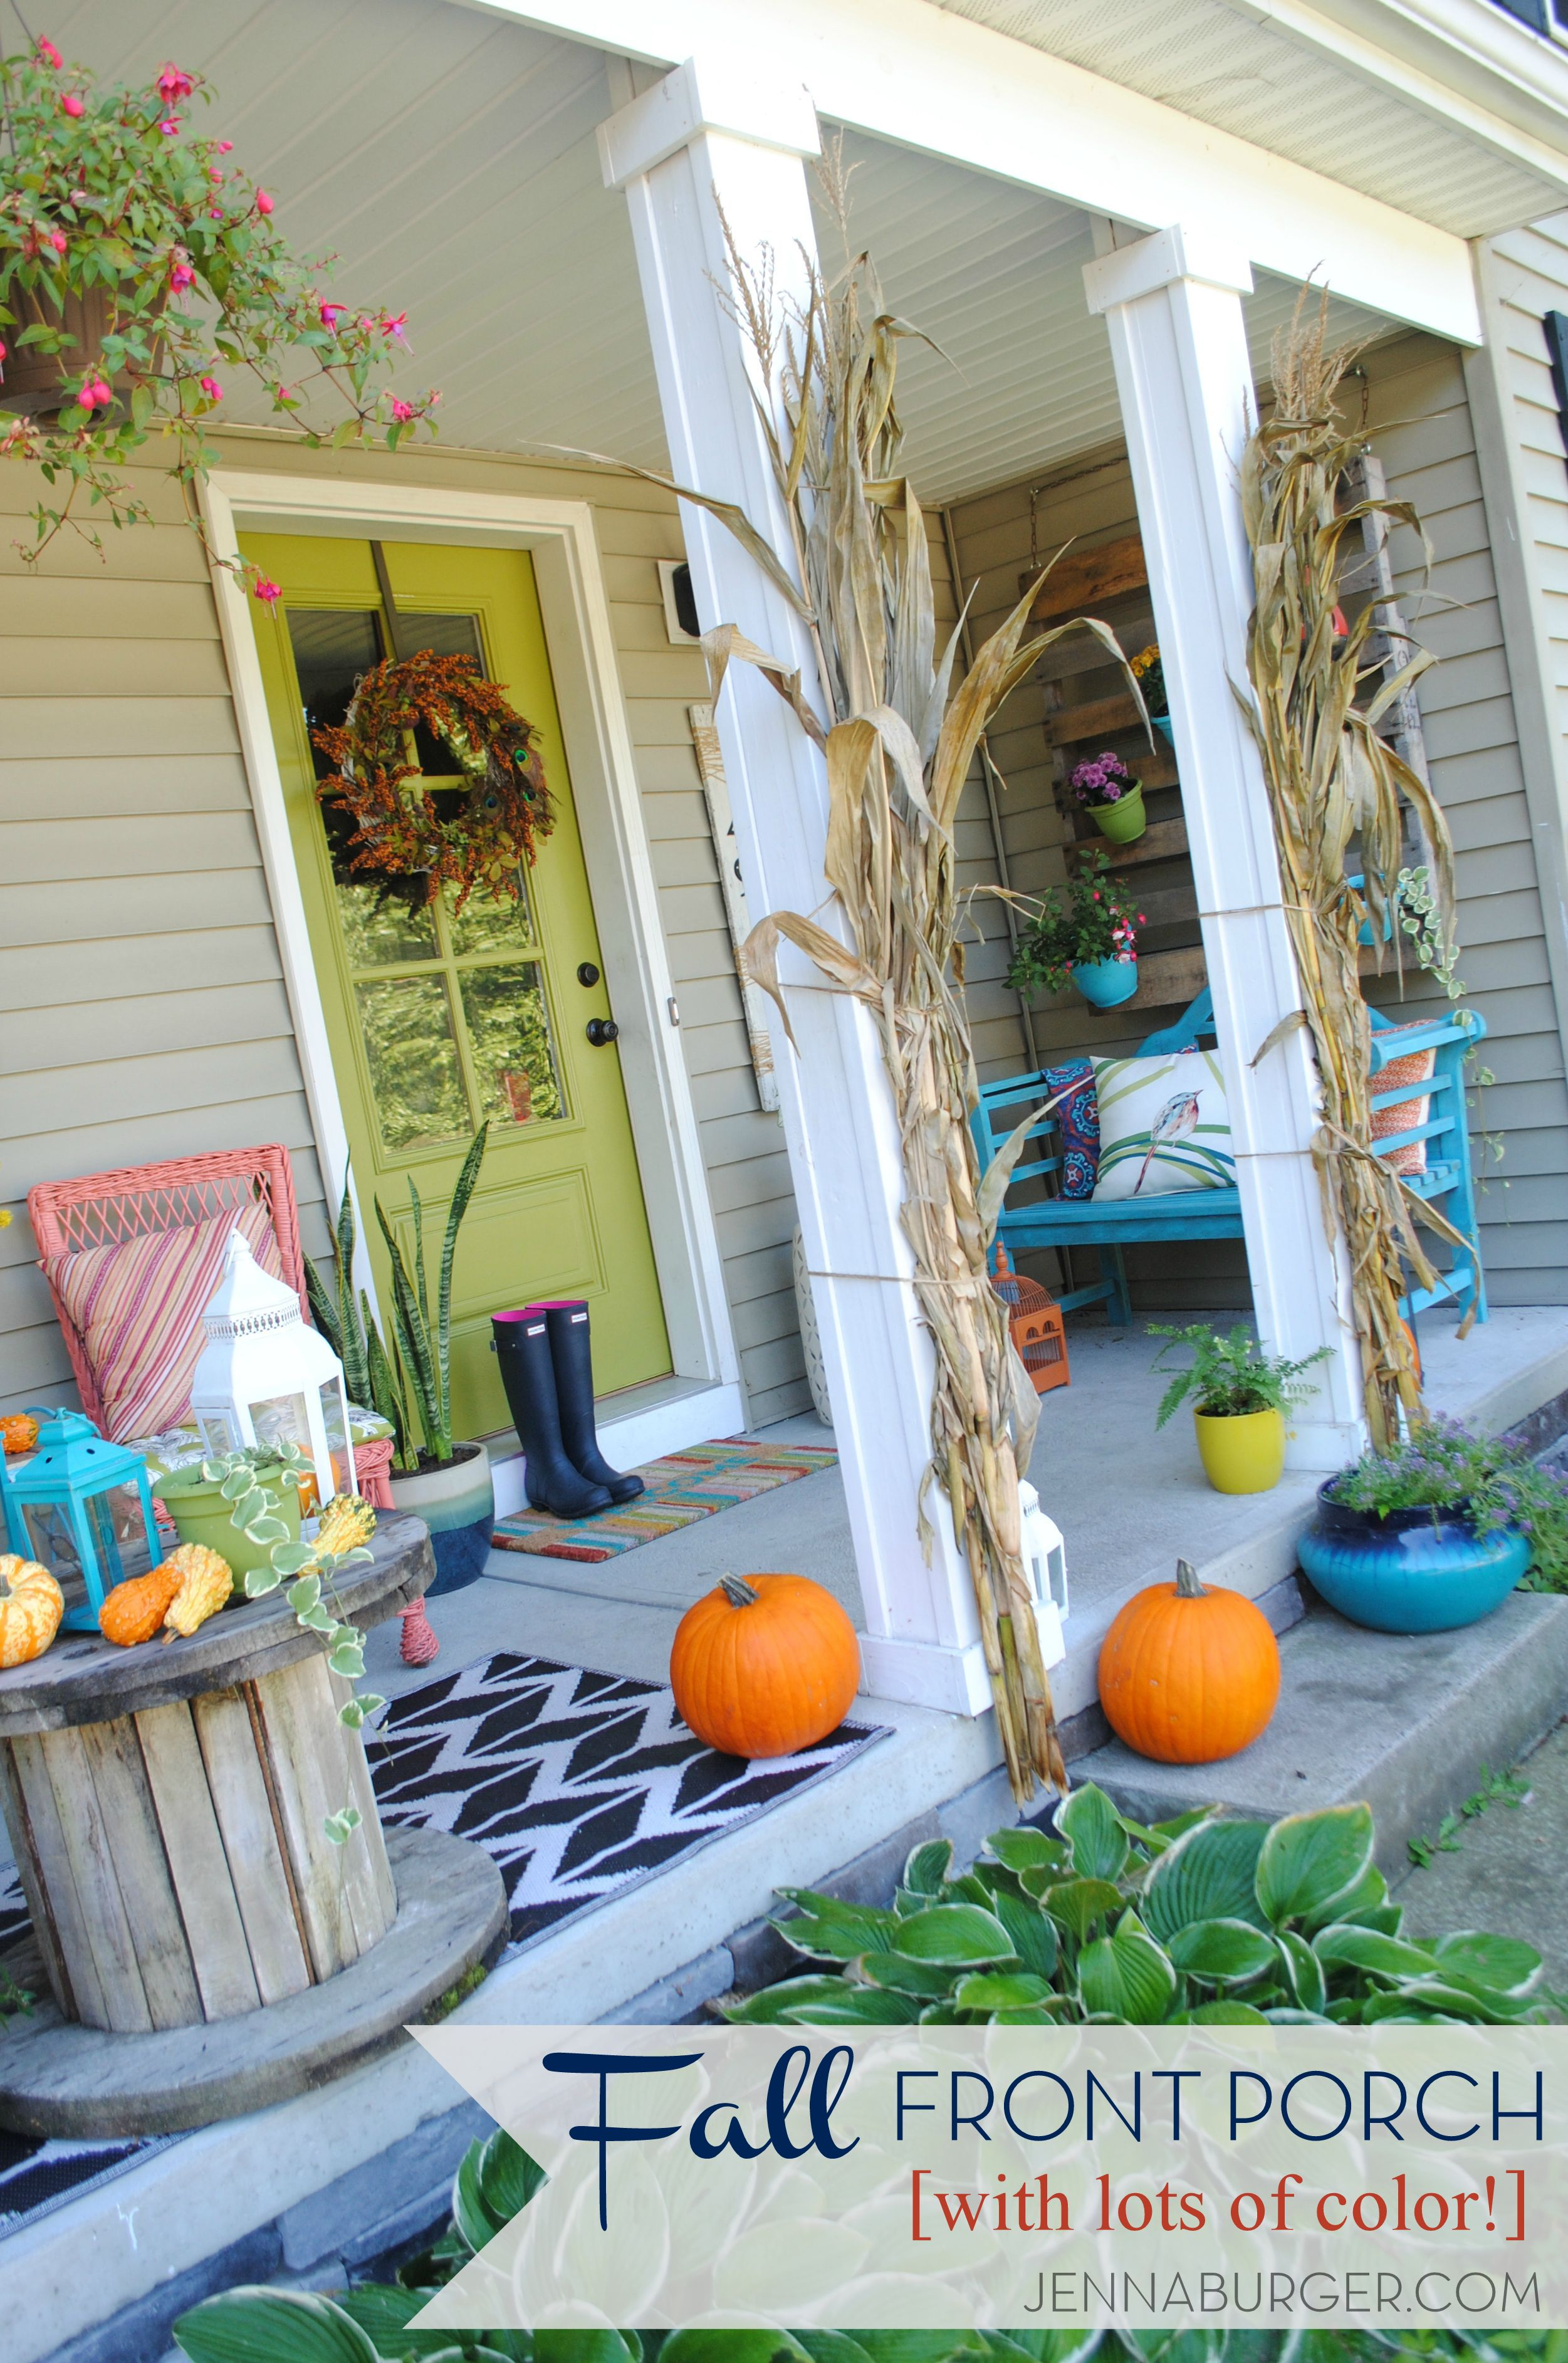 Fall front porch with color jenna burger - Wicker furniture paint colors ...